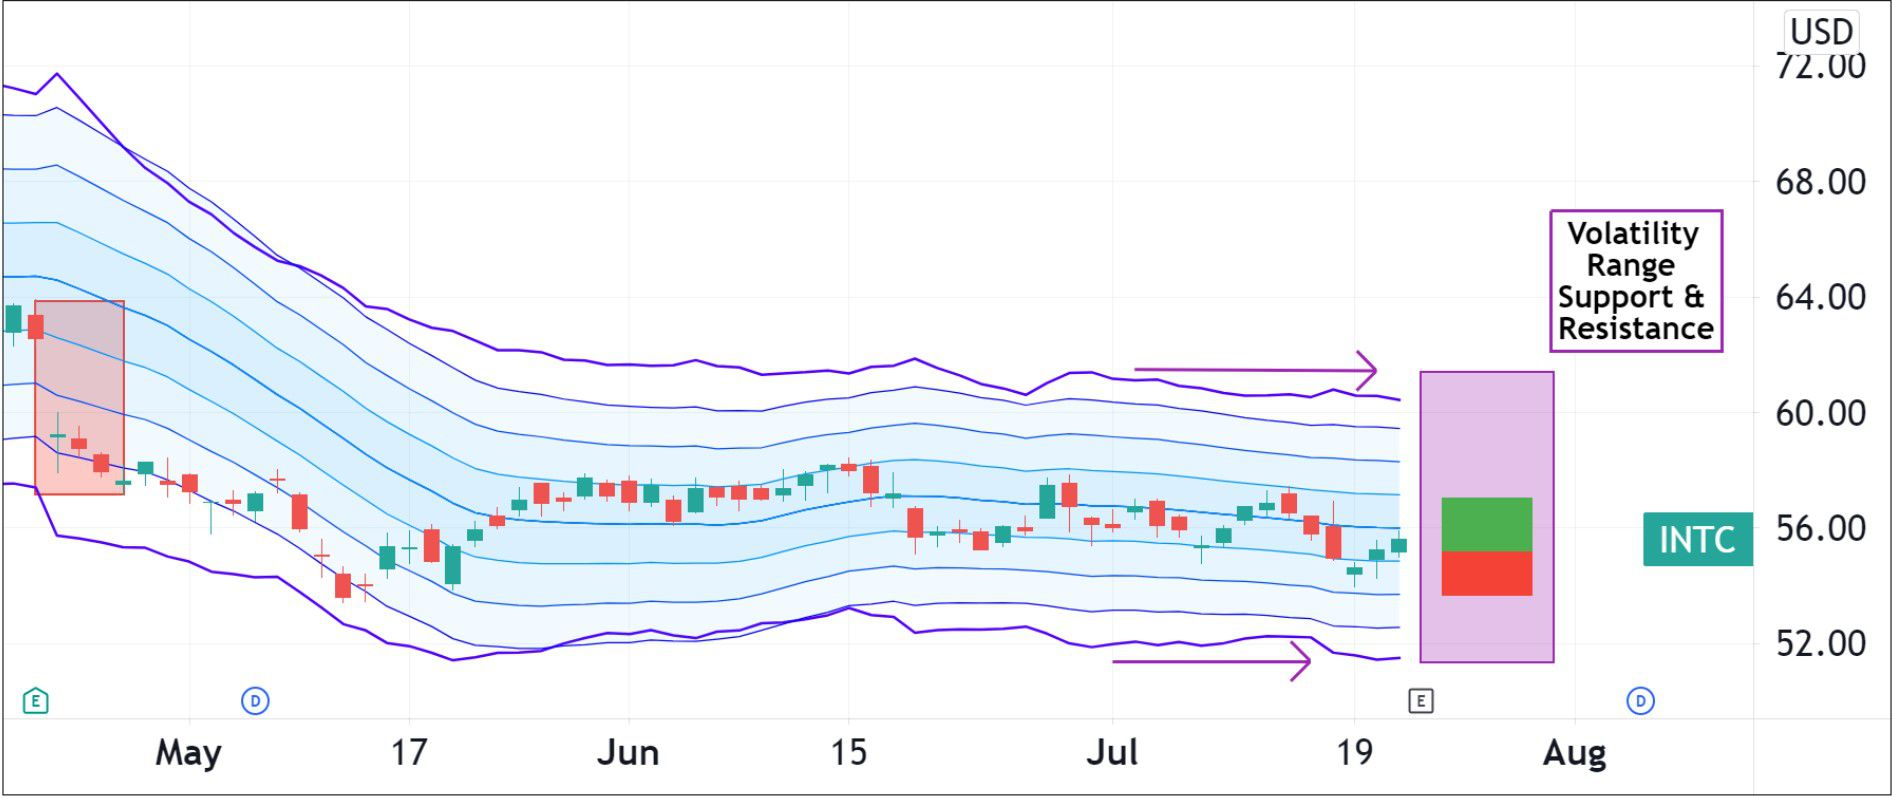 Volatility pattern for INTC